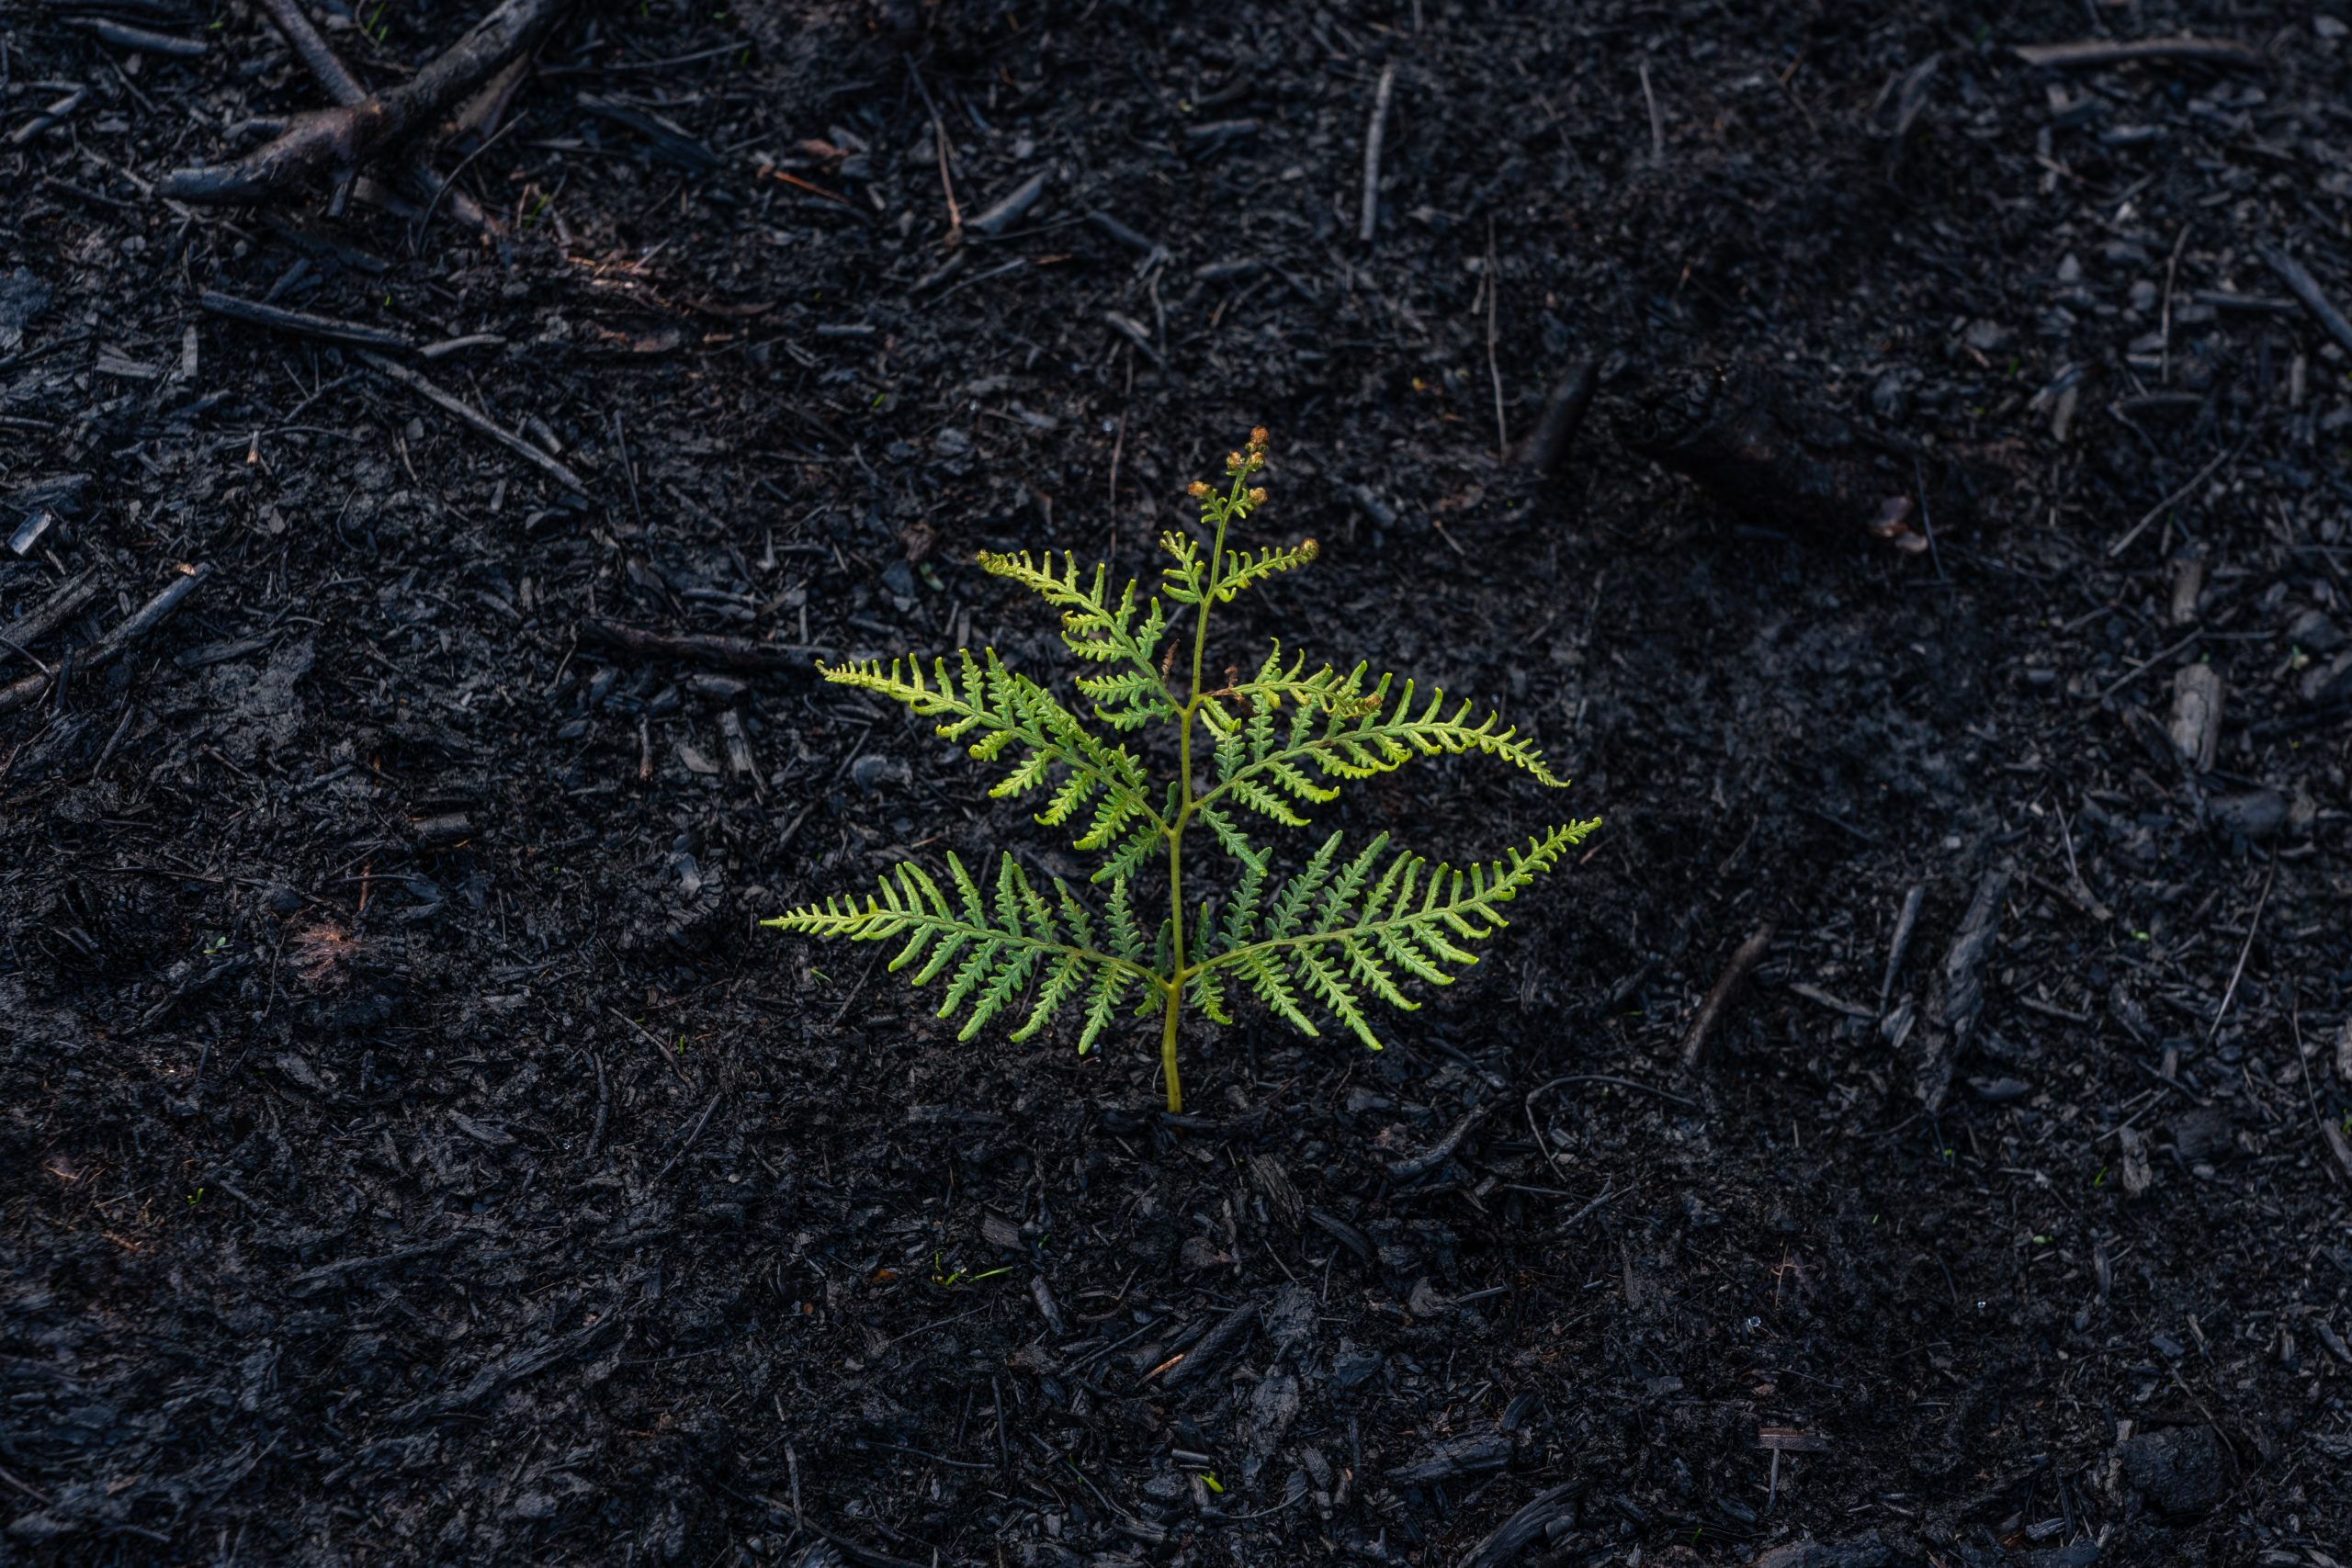 A fern flourishes in an unlikely environment